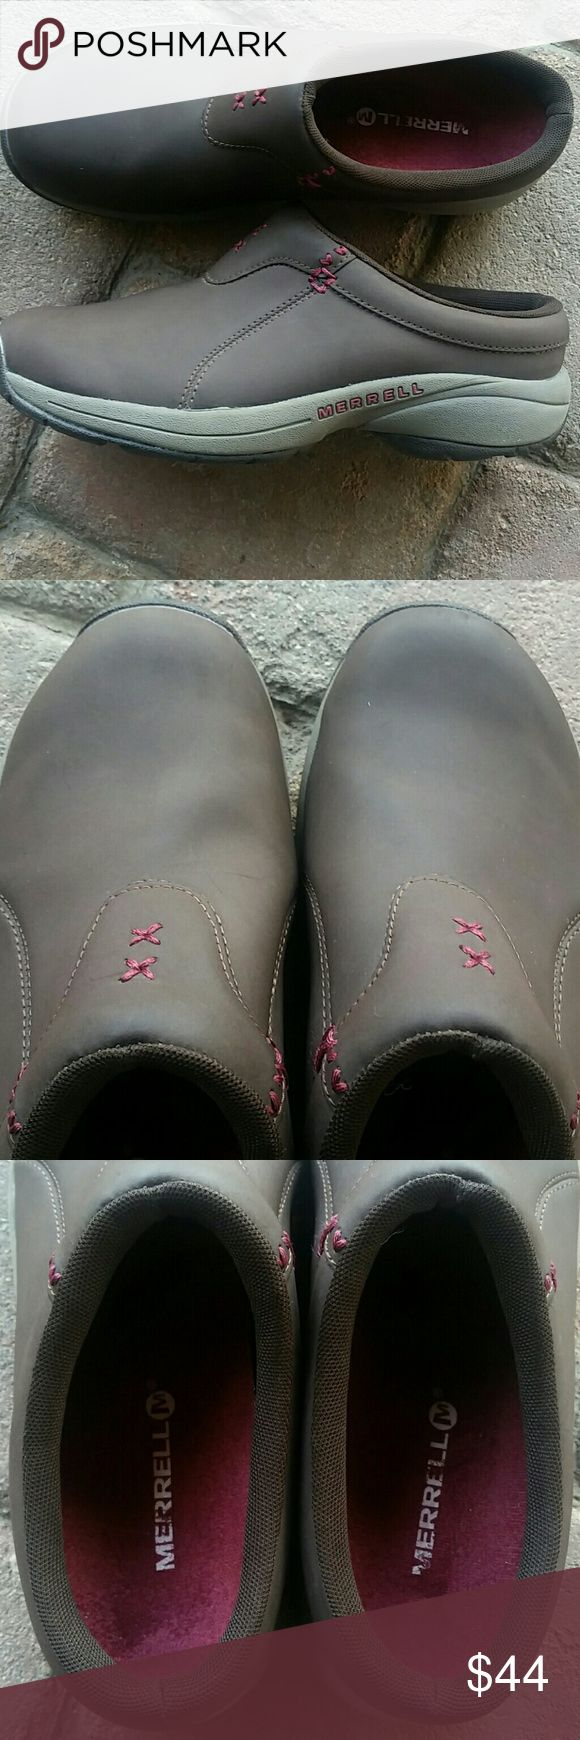 Women's Merrill Slip On Shoes Expresso Sz 9 Women's Merrill Slip on shoes. Sz 9 Expresso, like new. Merrill Shoes